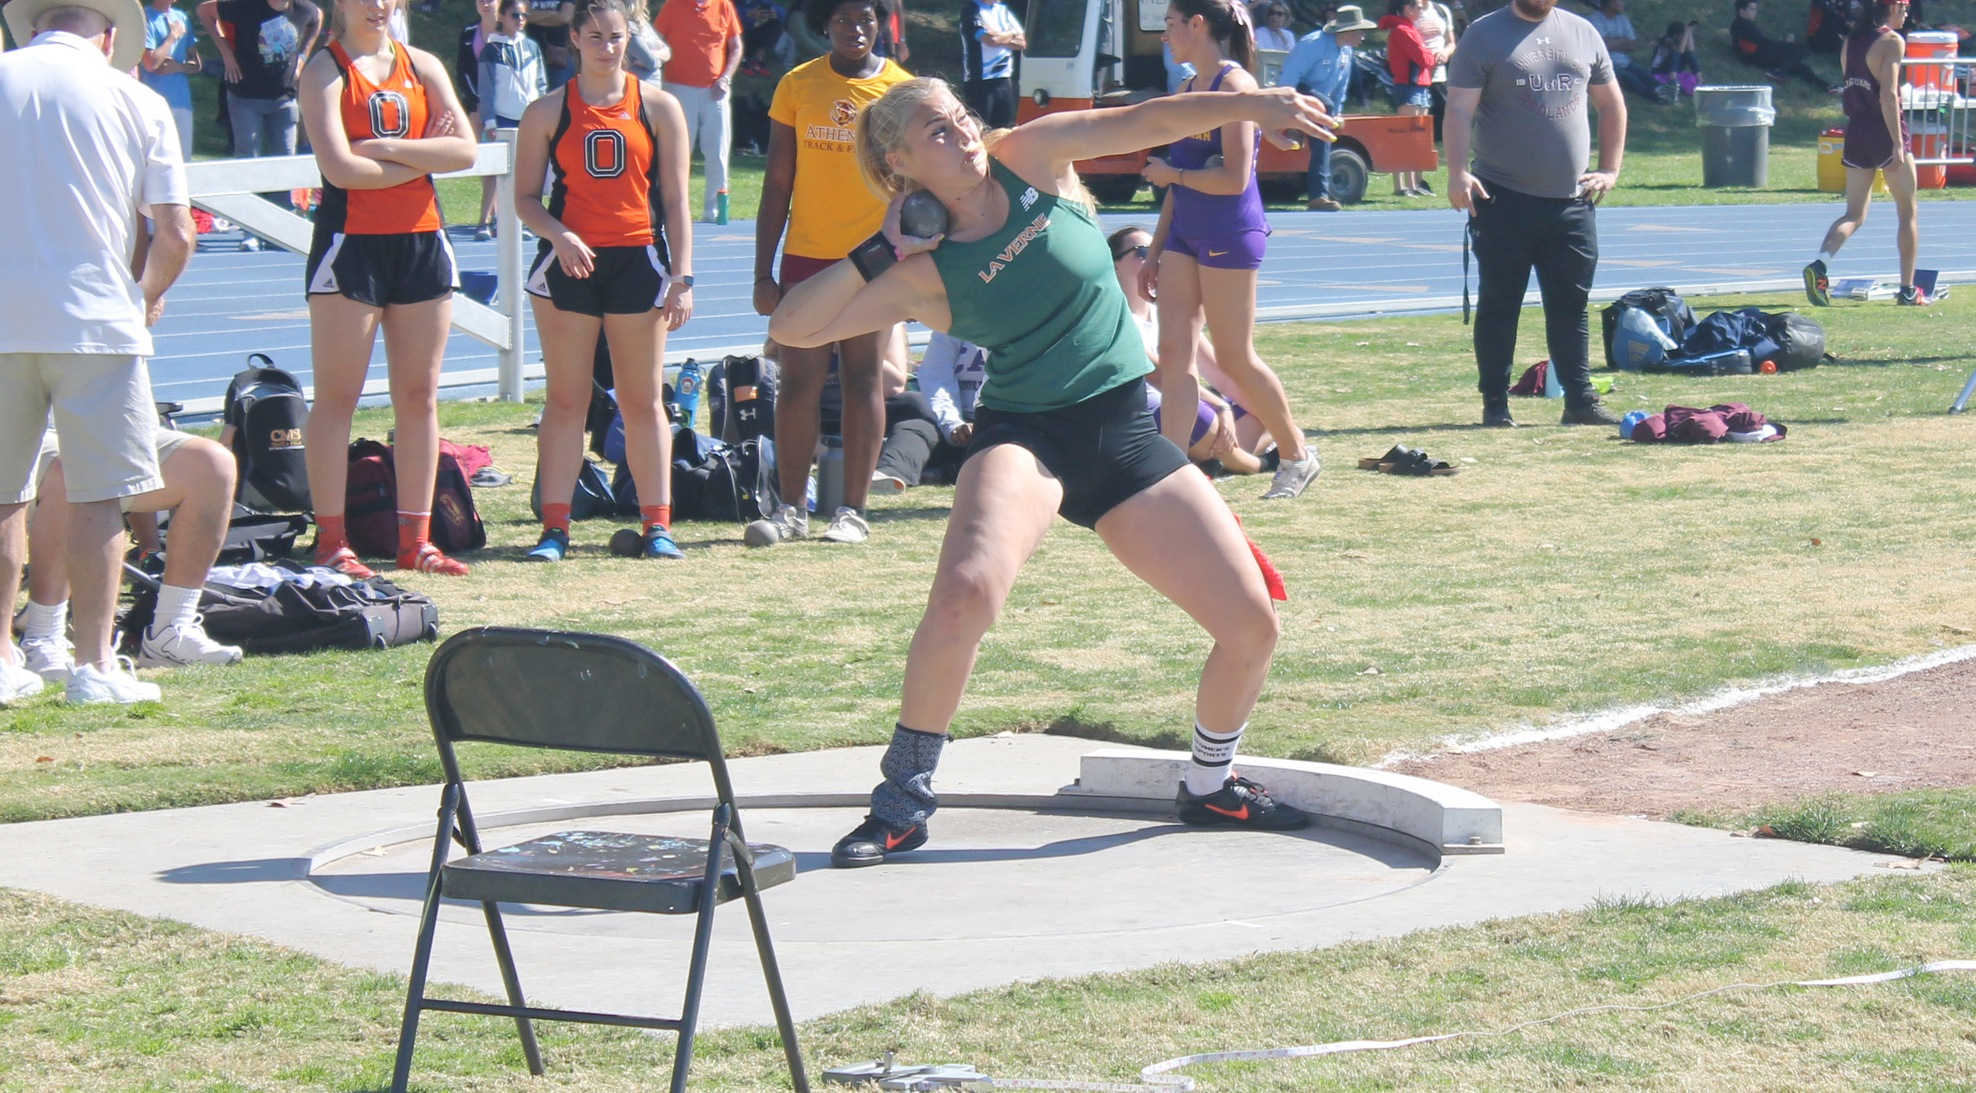 Leopards compete at Oxy